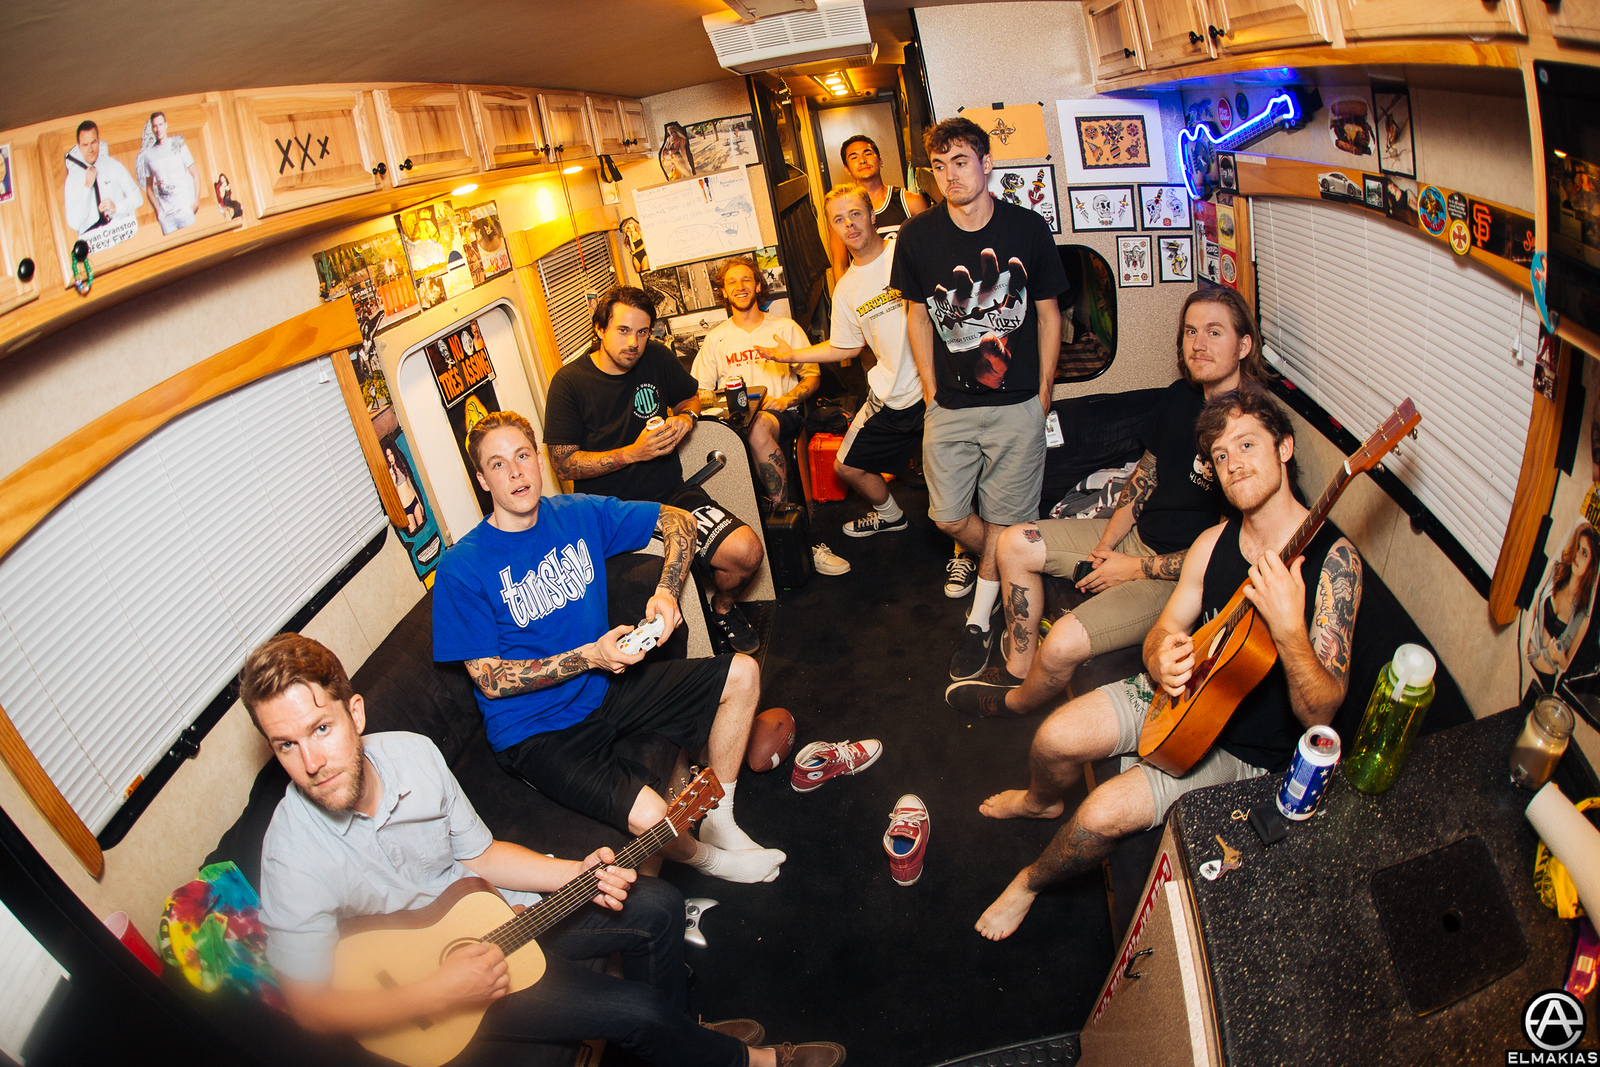 The Story So Far's home on Warped Tour